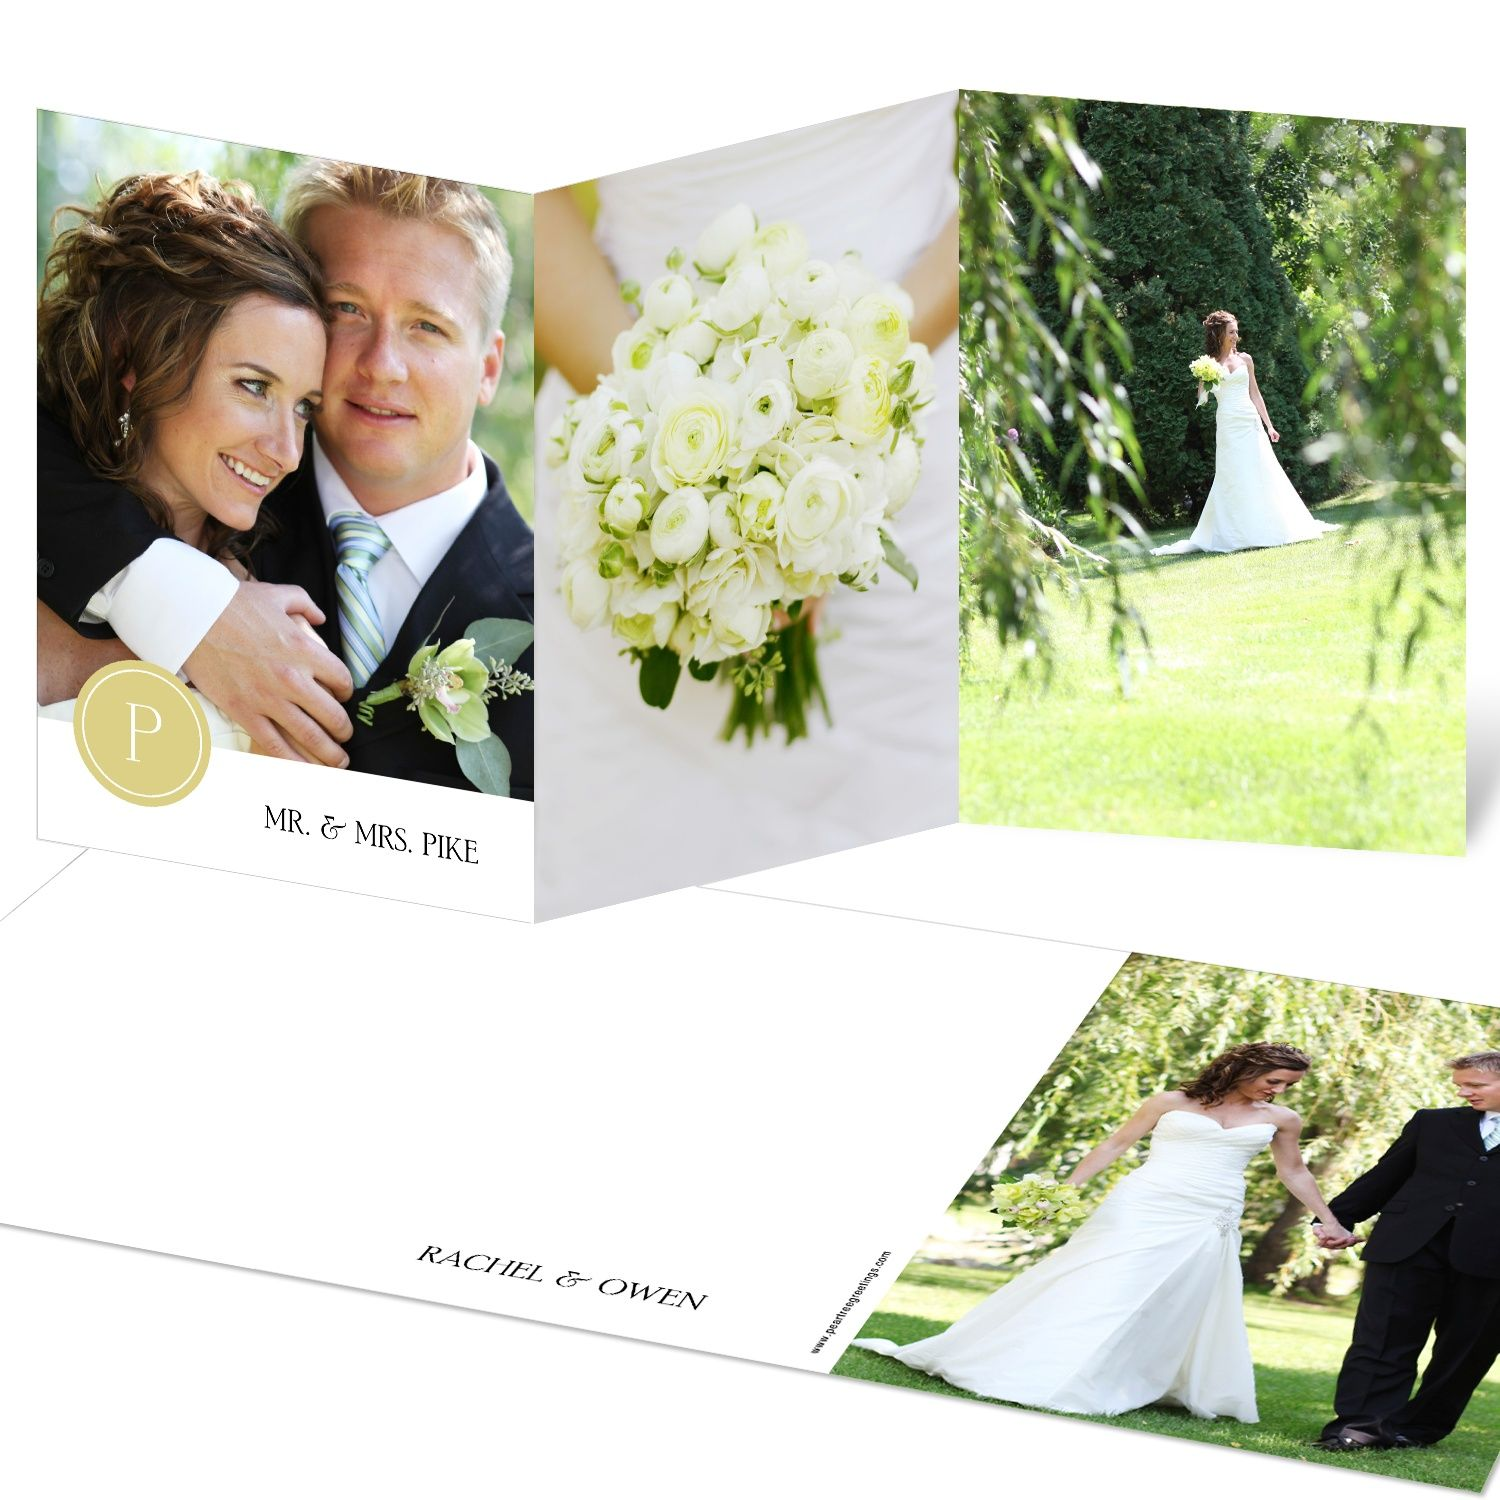 Wedding Thank You Note Wording: 5 Common Questions About Wedding Thank You Card Wording